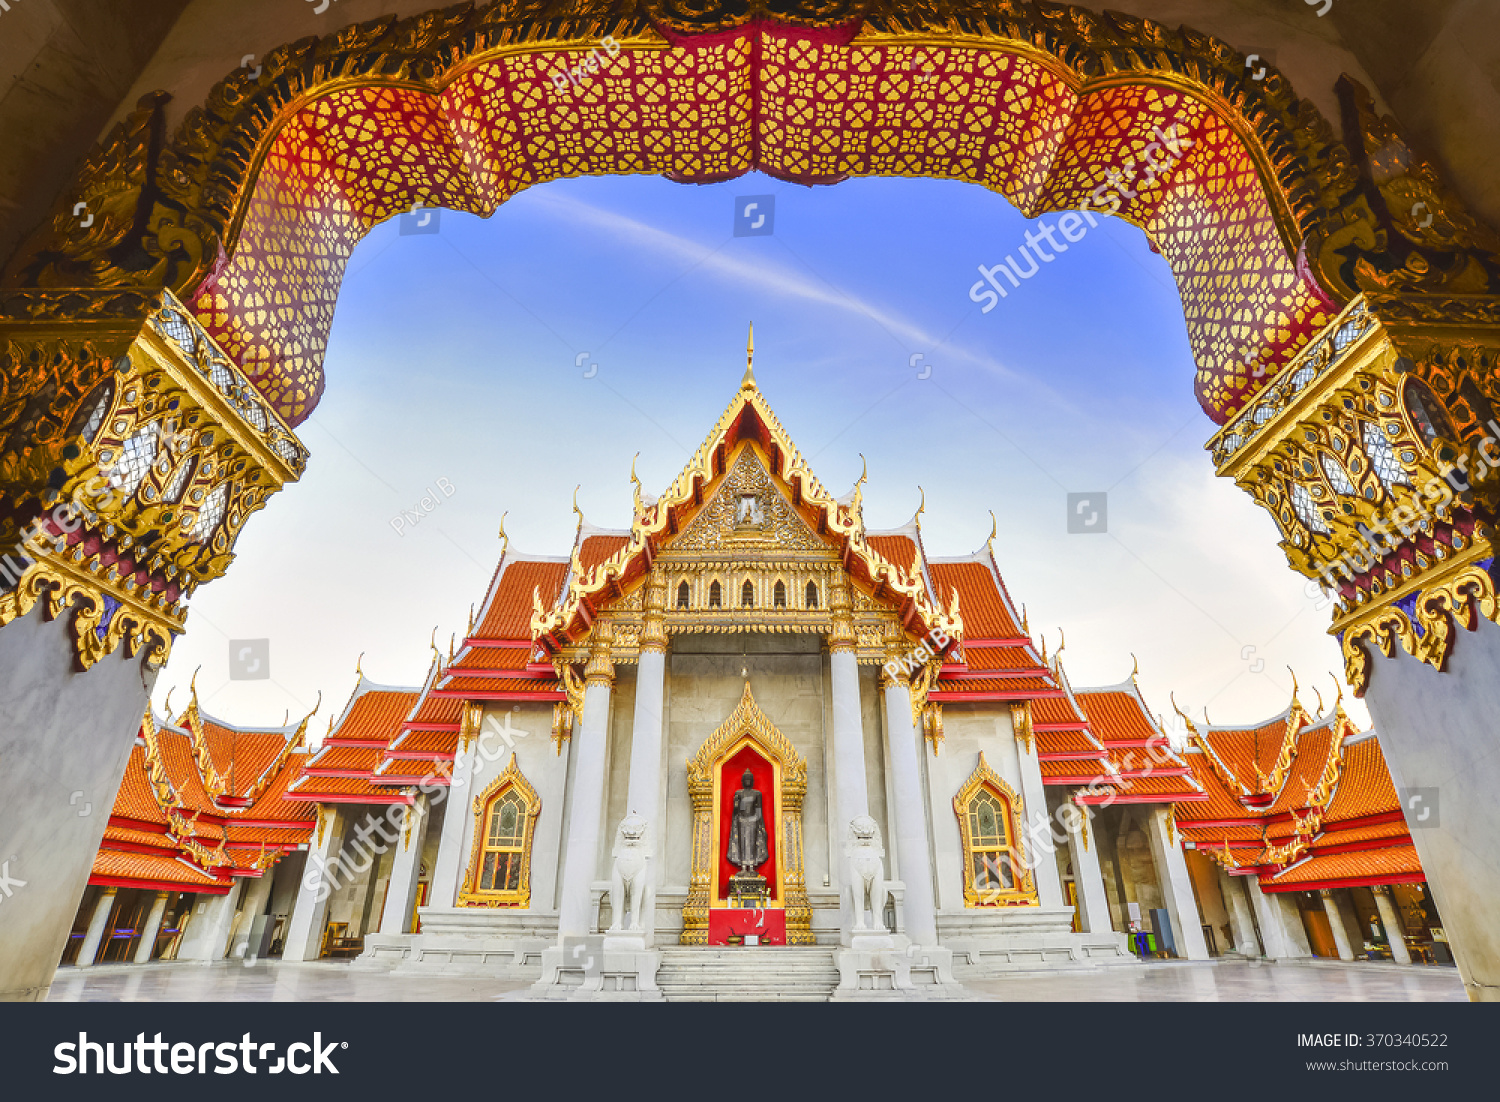 Beautiful marble temple at Bangkok city Thailand with the twilight scene from the entrance view